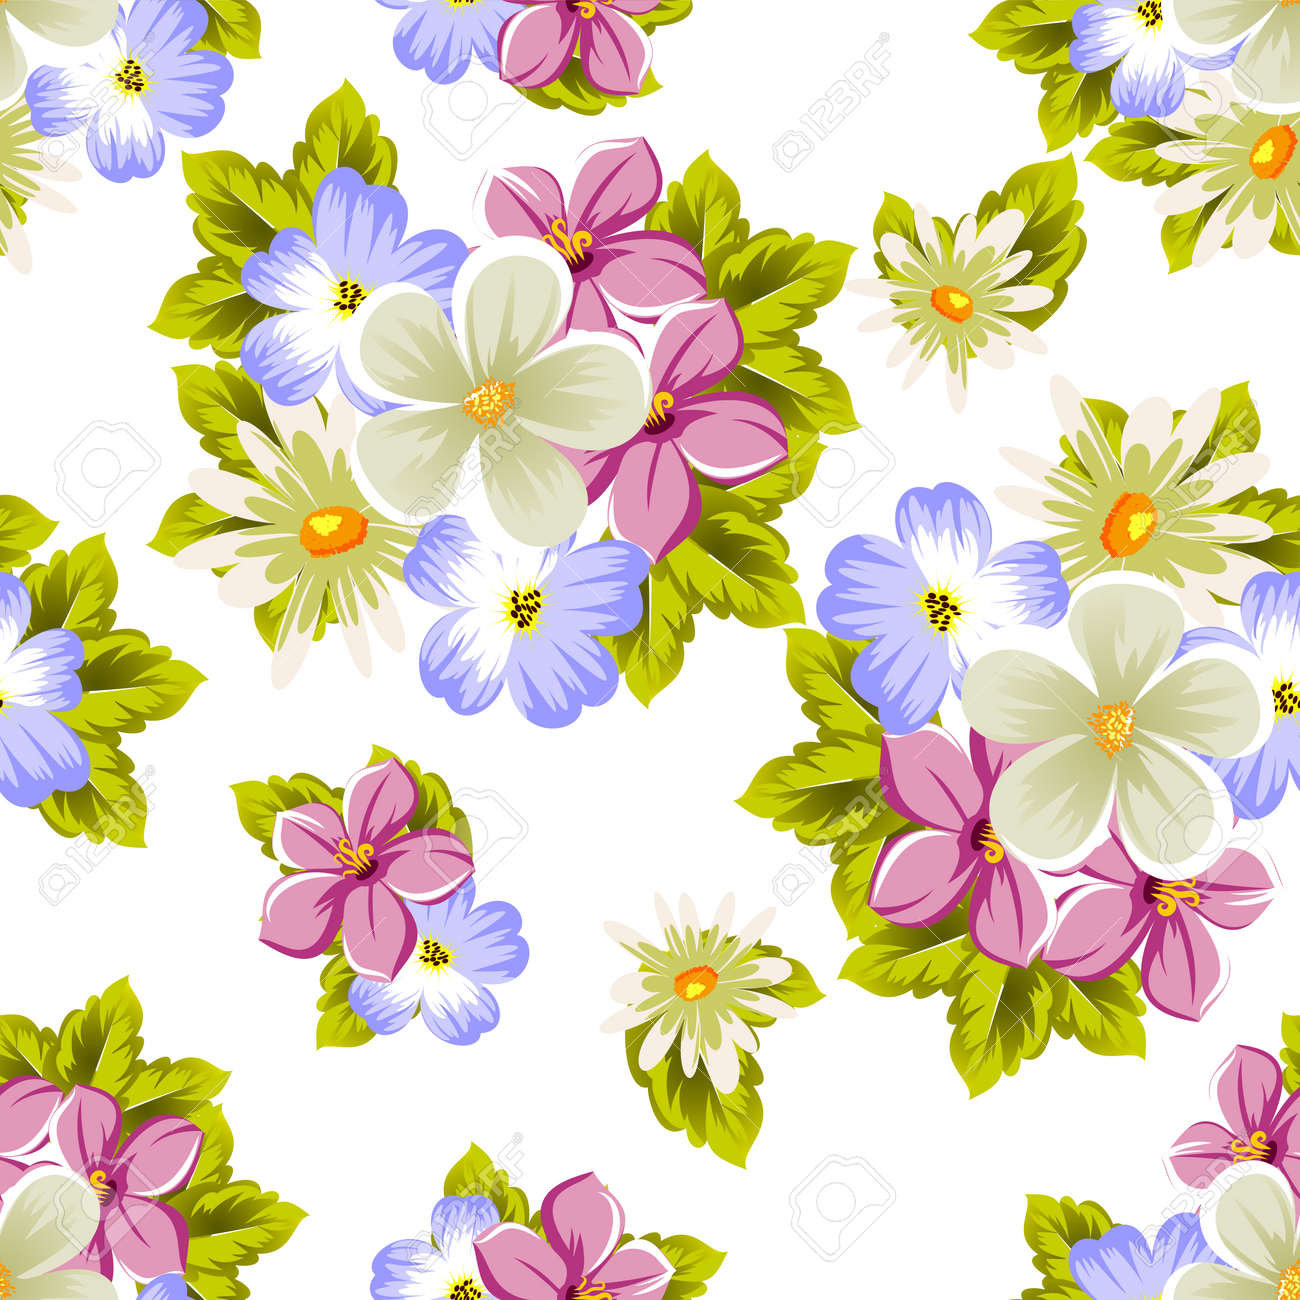 Floral Seamless Pattern Of Several Flowers For Design Of Cards